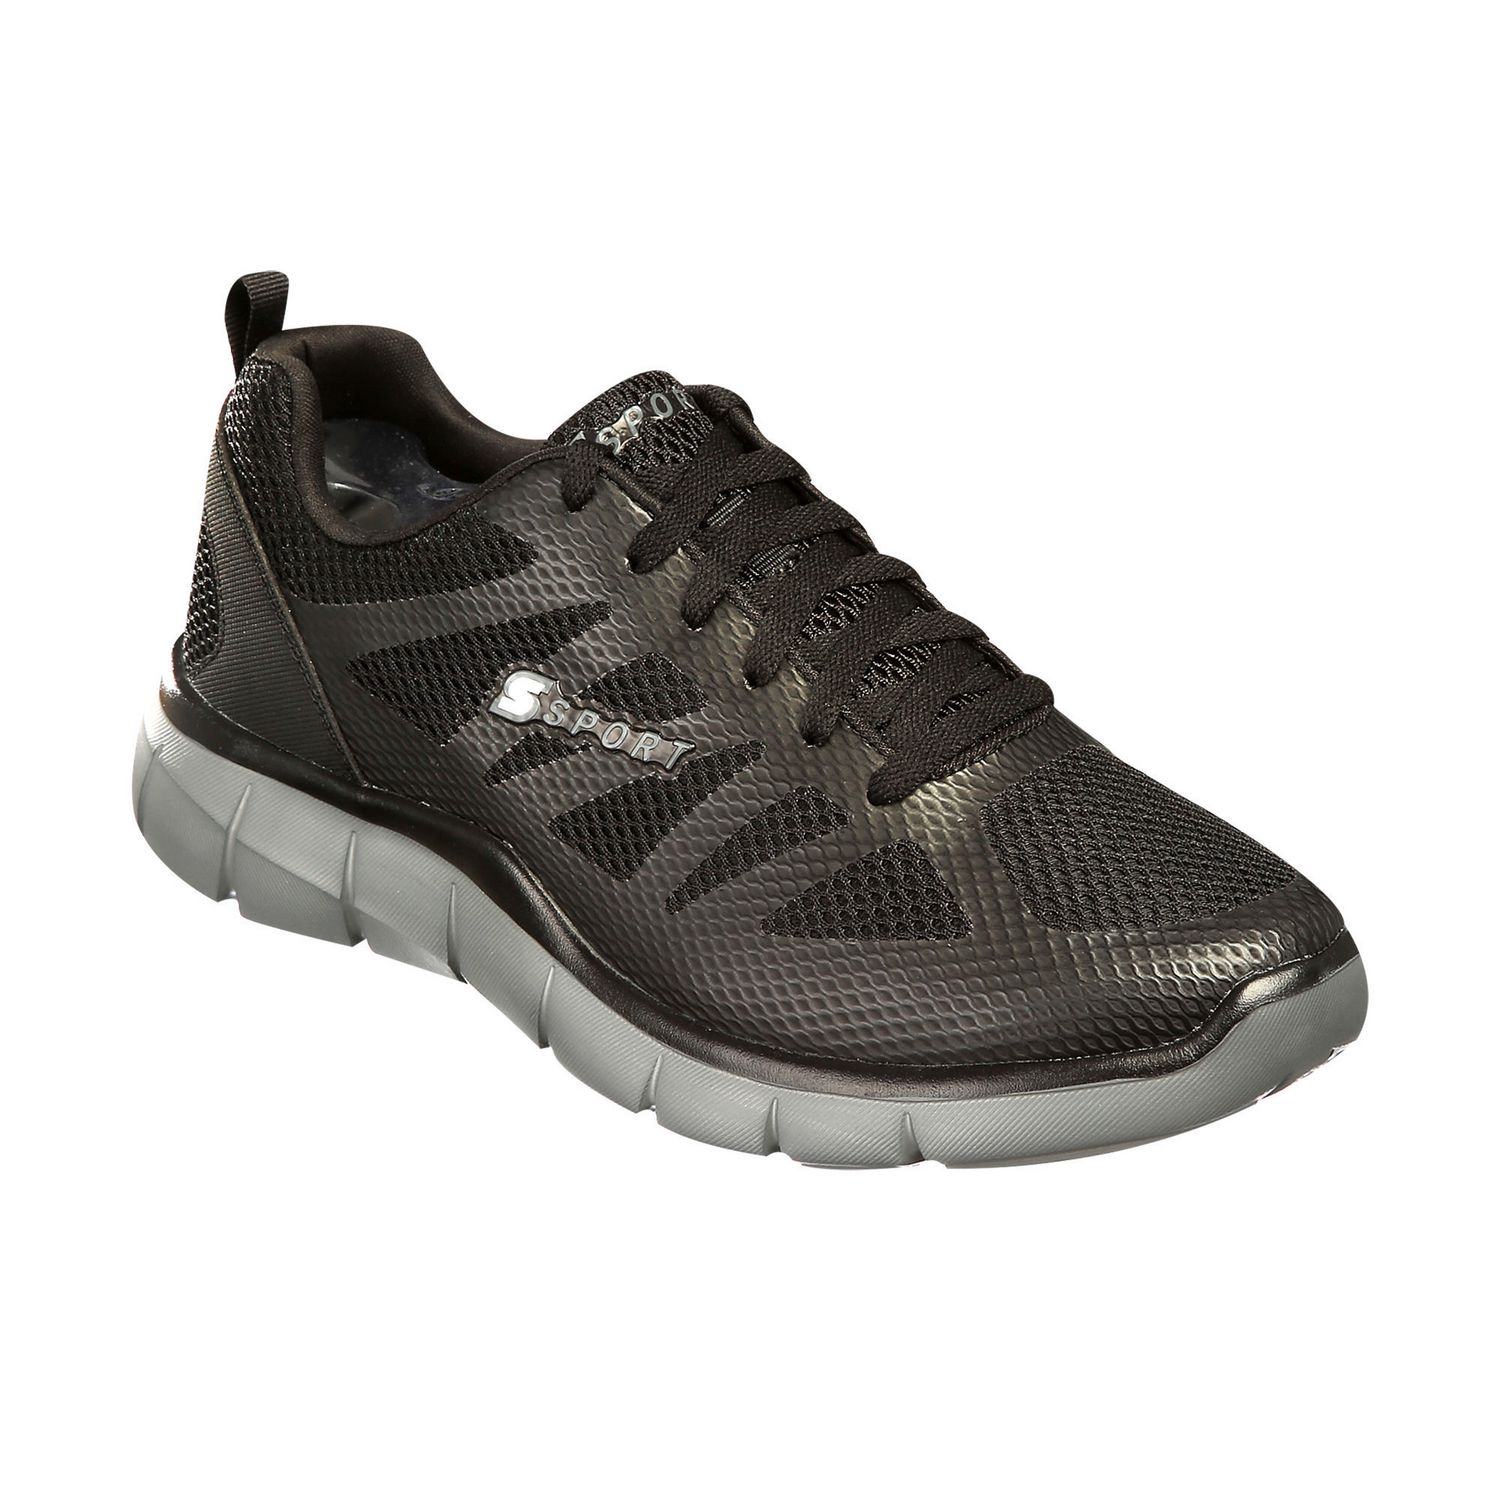 ef6ea3fa9ef3 S Sport Designed by Skechers Skechers Men s Lace up Athletic Shoes ...